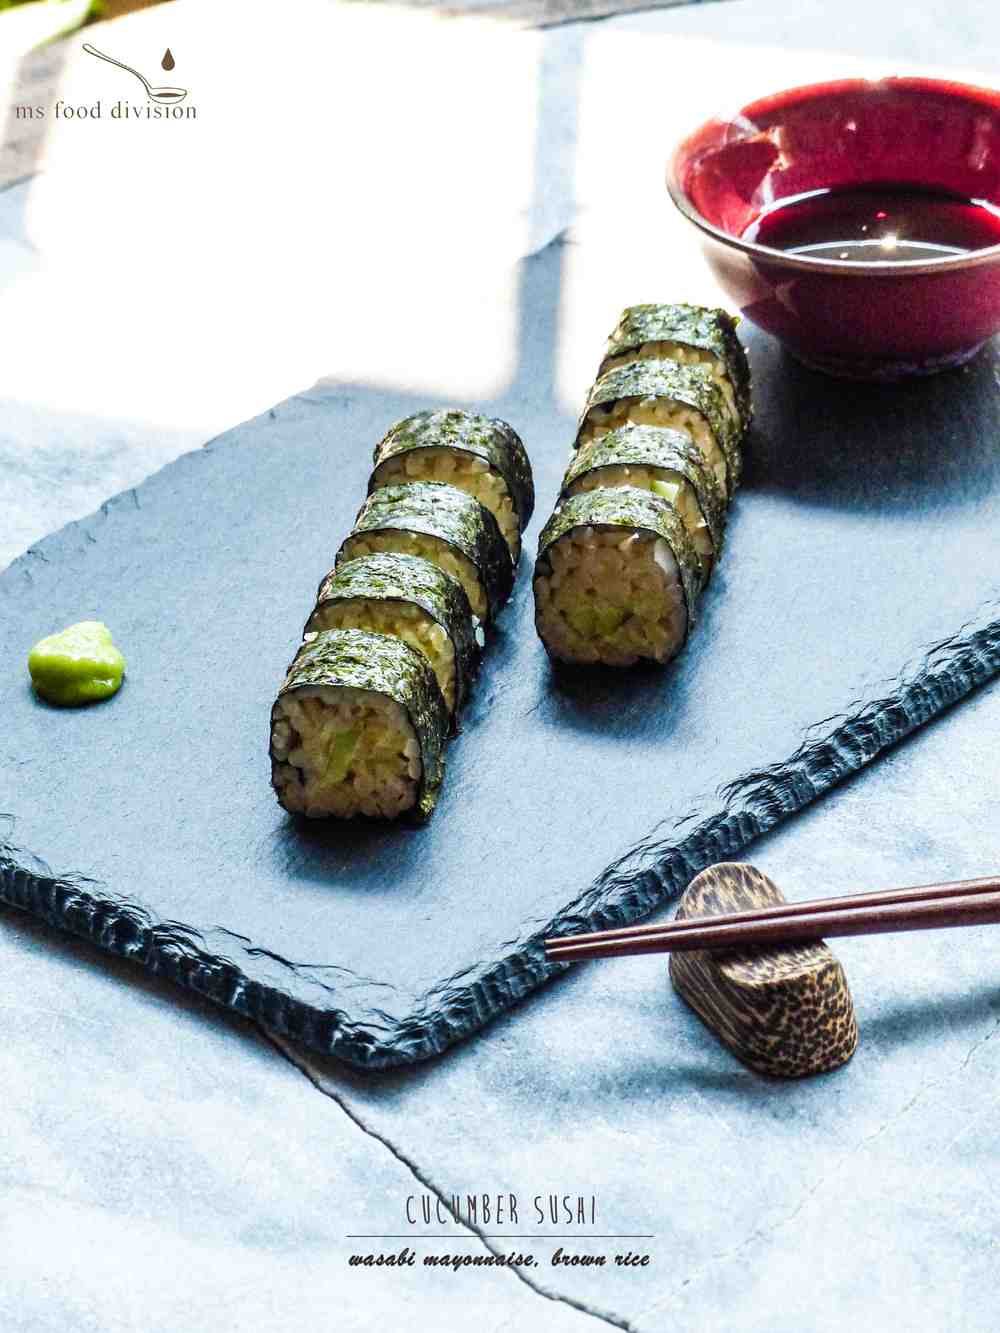 Another super easy dish - the highlight here is the wasabi mayonnaise.     To make the wasabi mayonnaise, all you need is to mix 1 tsp wasabi and 3-4 tbsp mayonnaise.  Mix well.      The key is to add a bit of wasabi mayonnaise on the rice while laying the chopped cucumbers on the rice.  Then roll the sushi with a sushi mat.